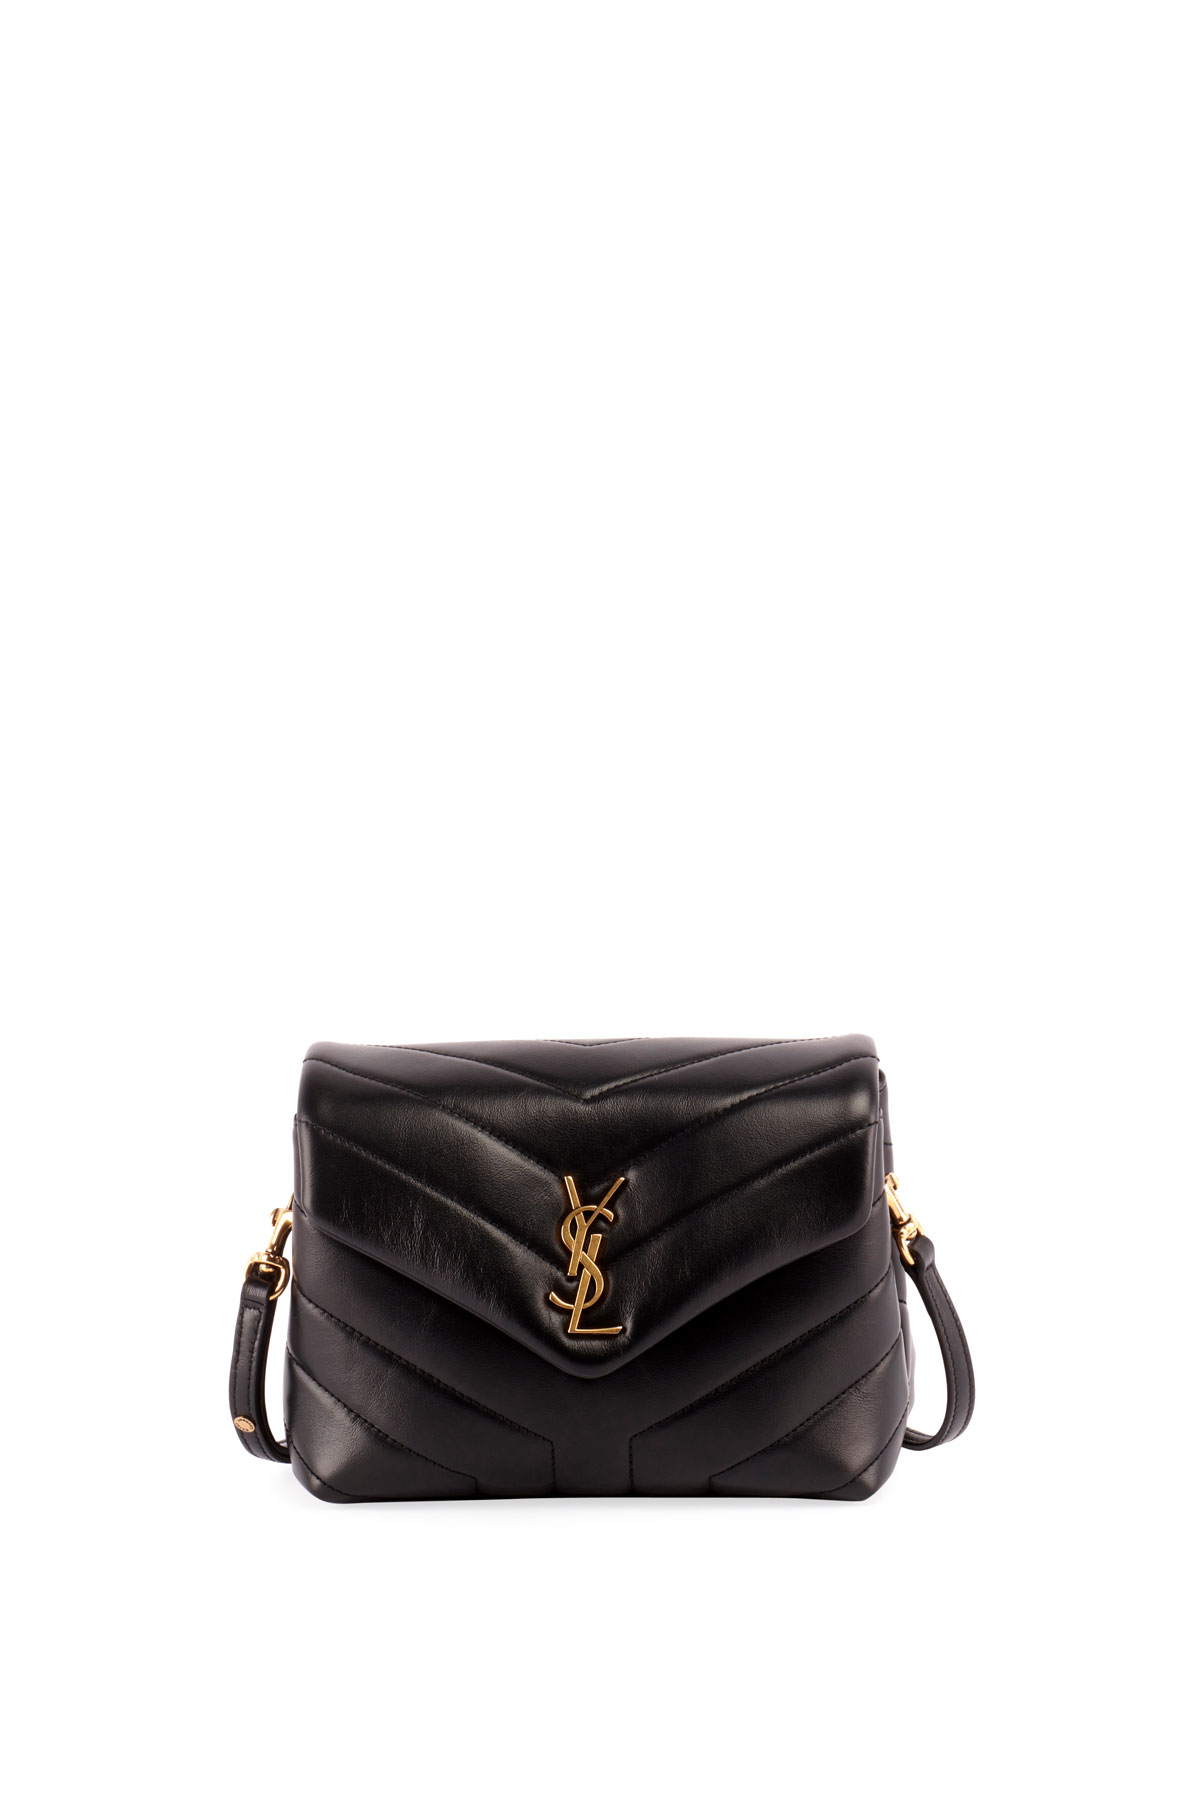 Saint Laurent Loulou Monogram Ysl Mini V Flap Calf Leather